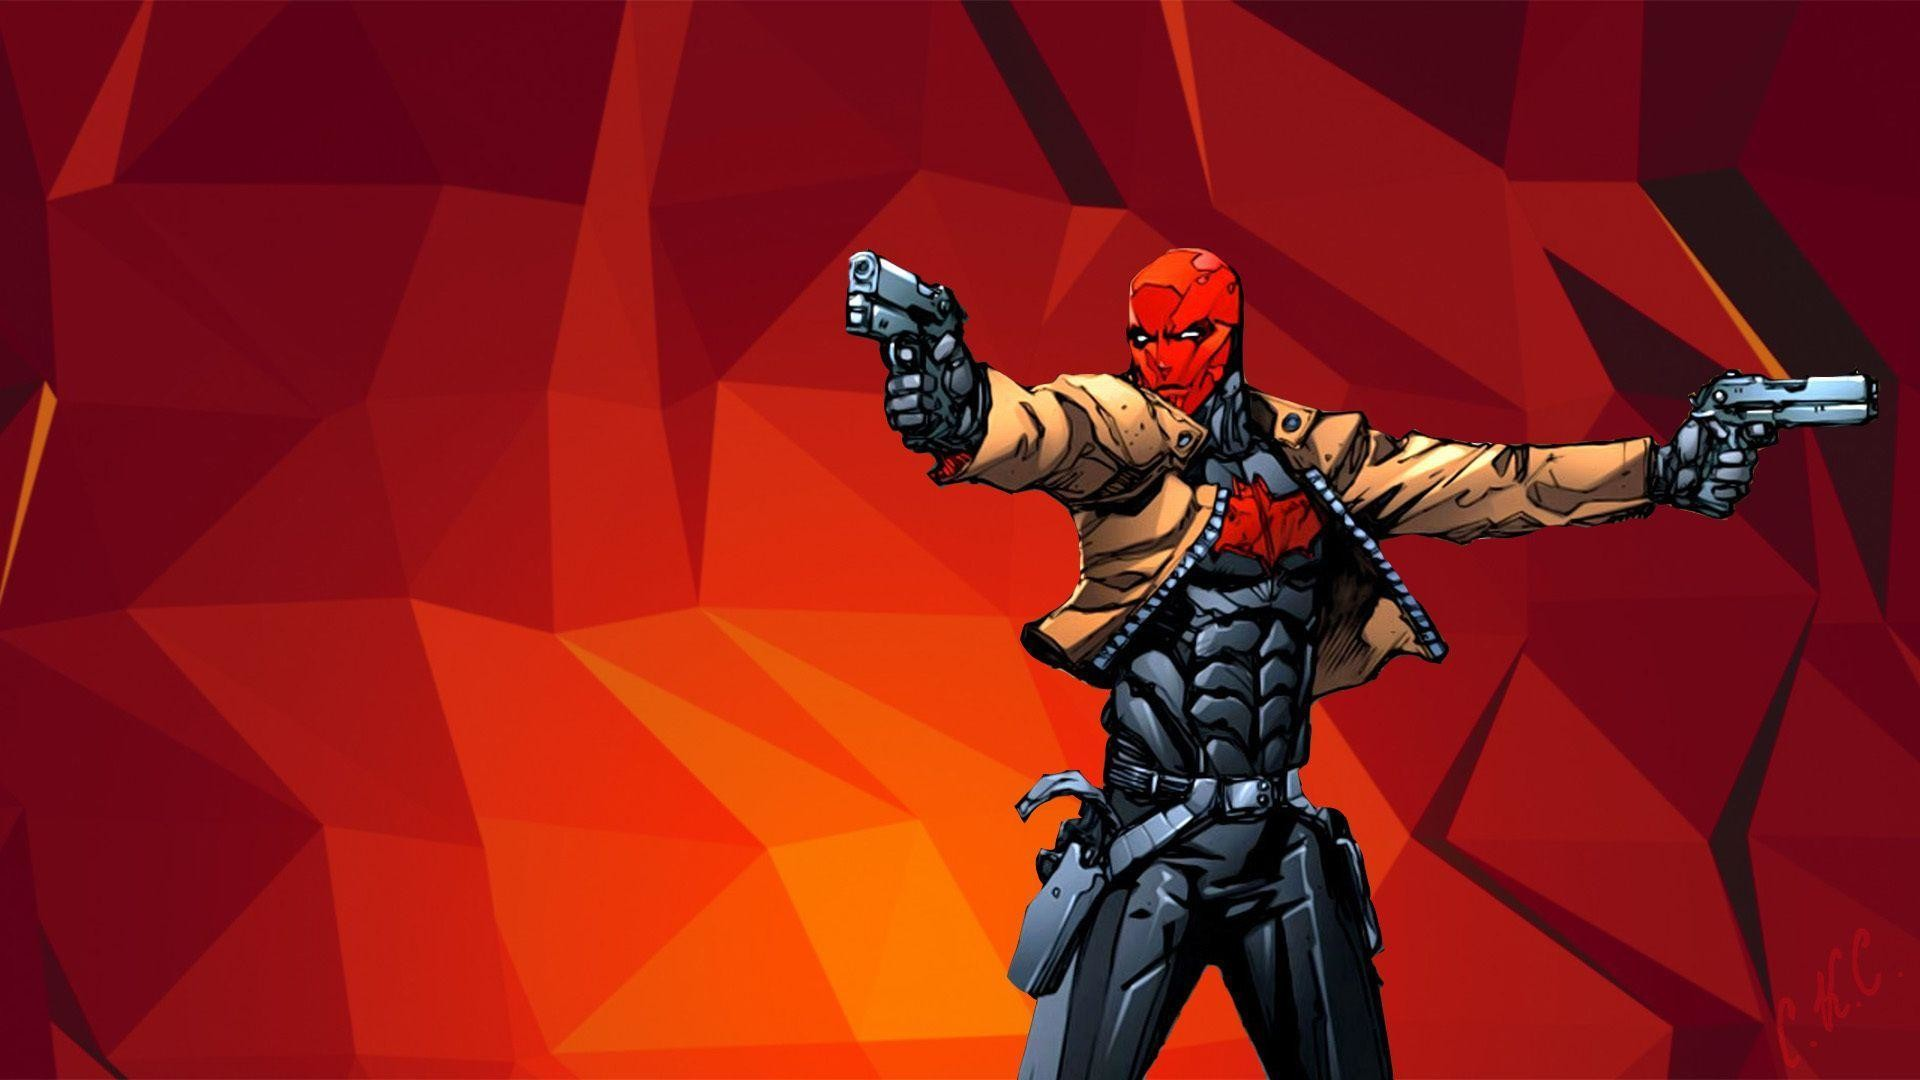 Jason todd red hood wallpaper 84 images - Hood cartoon wallpaper ...